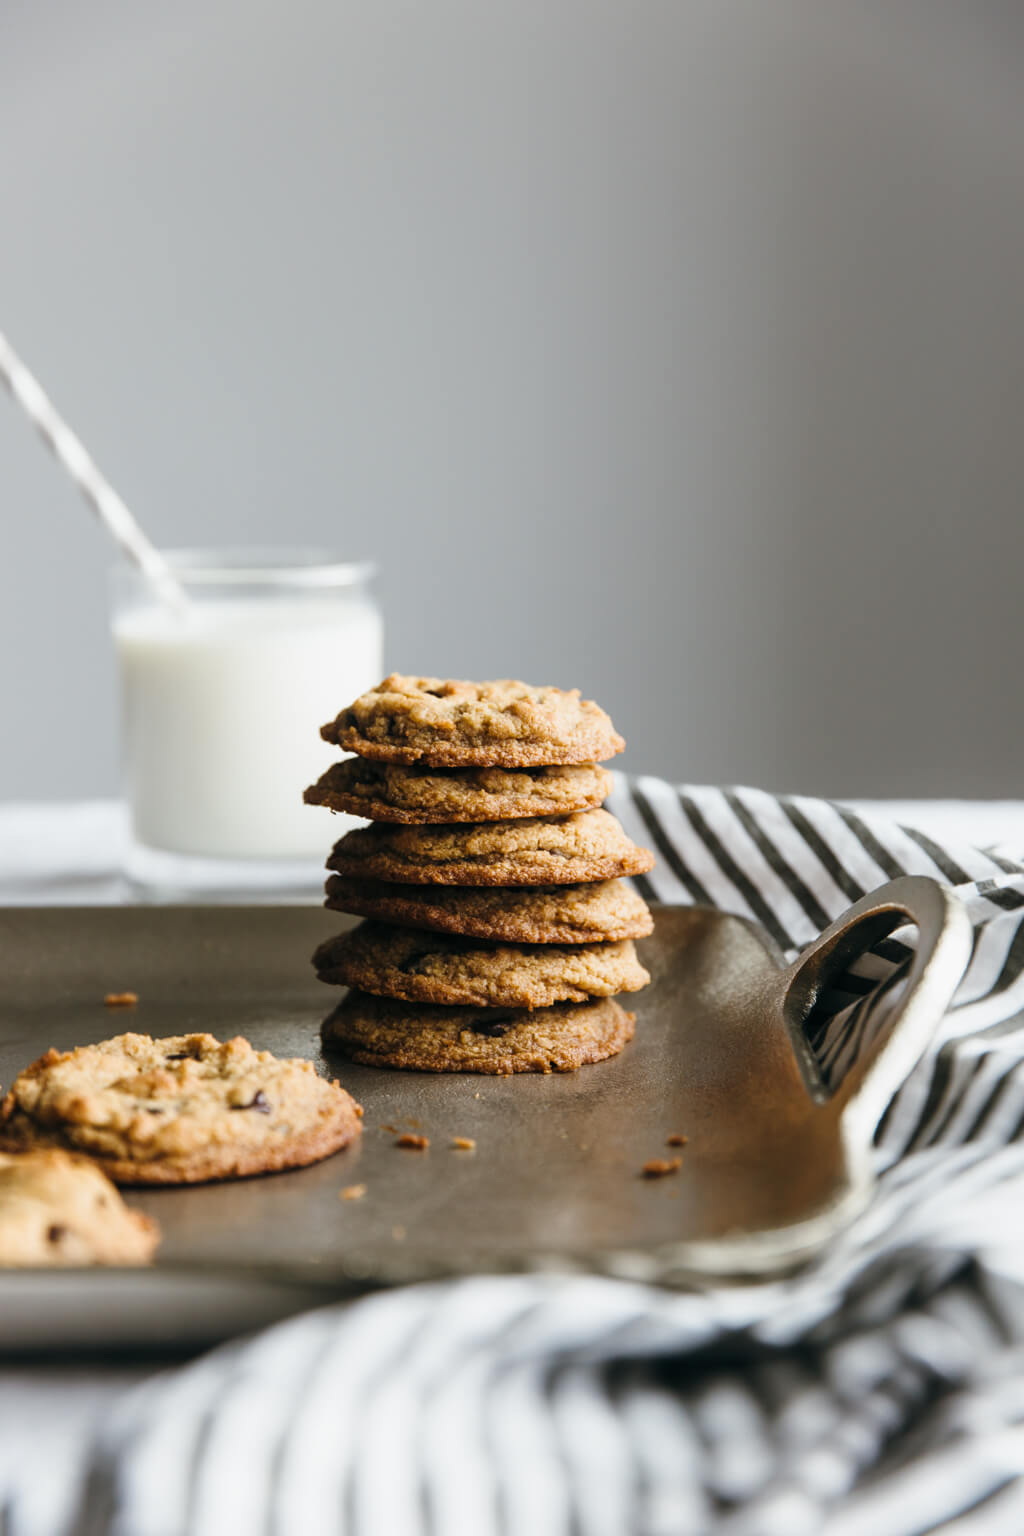 The best chocolate chip cookies. Paleo, vegan, gluten-free, grain-free.